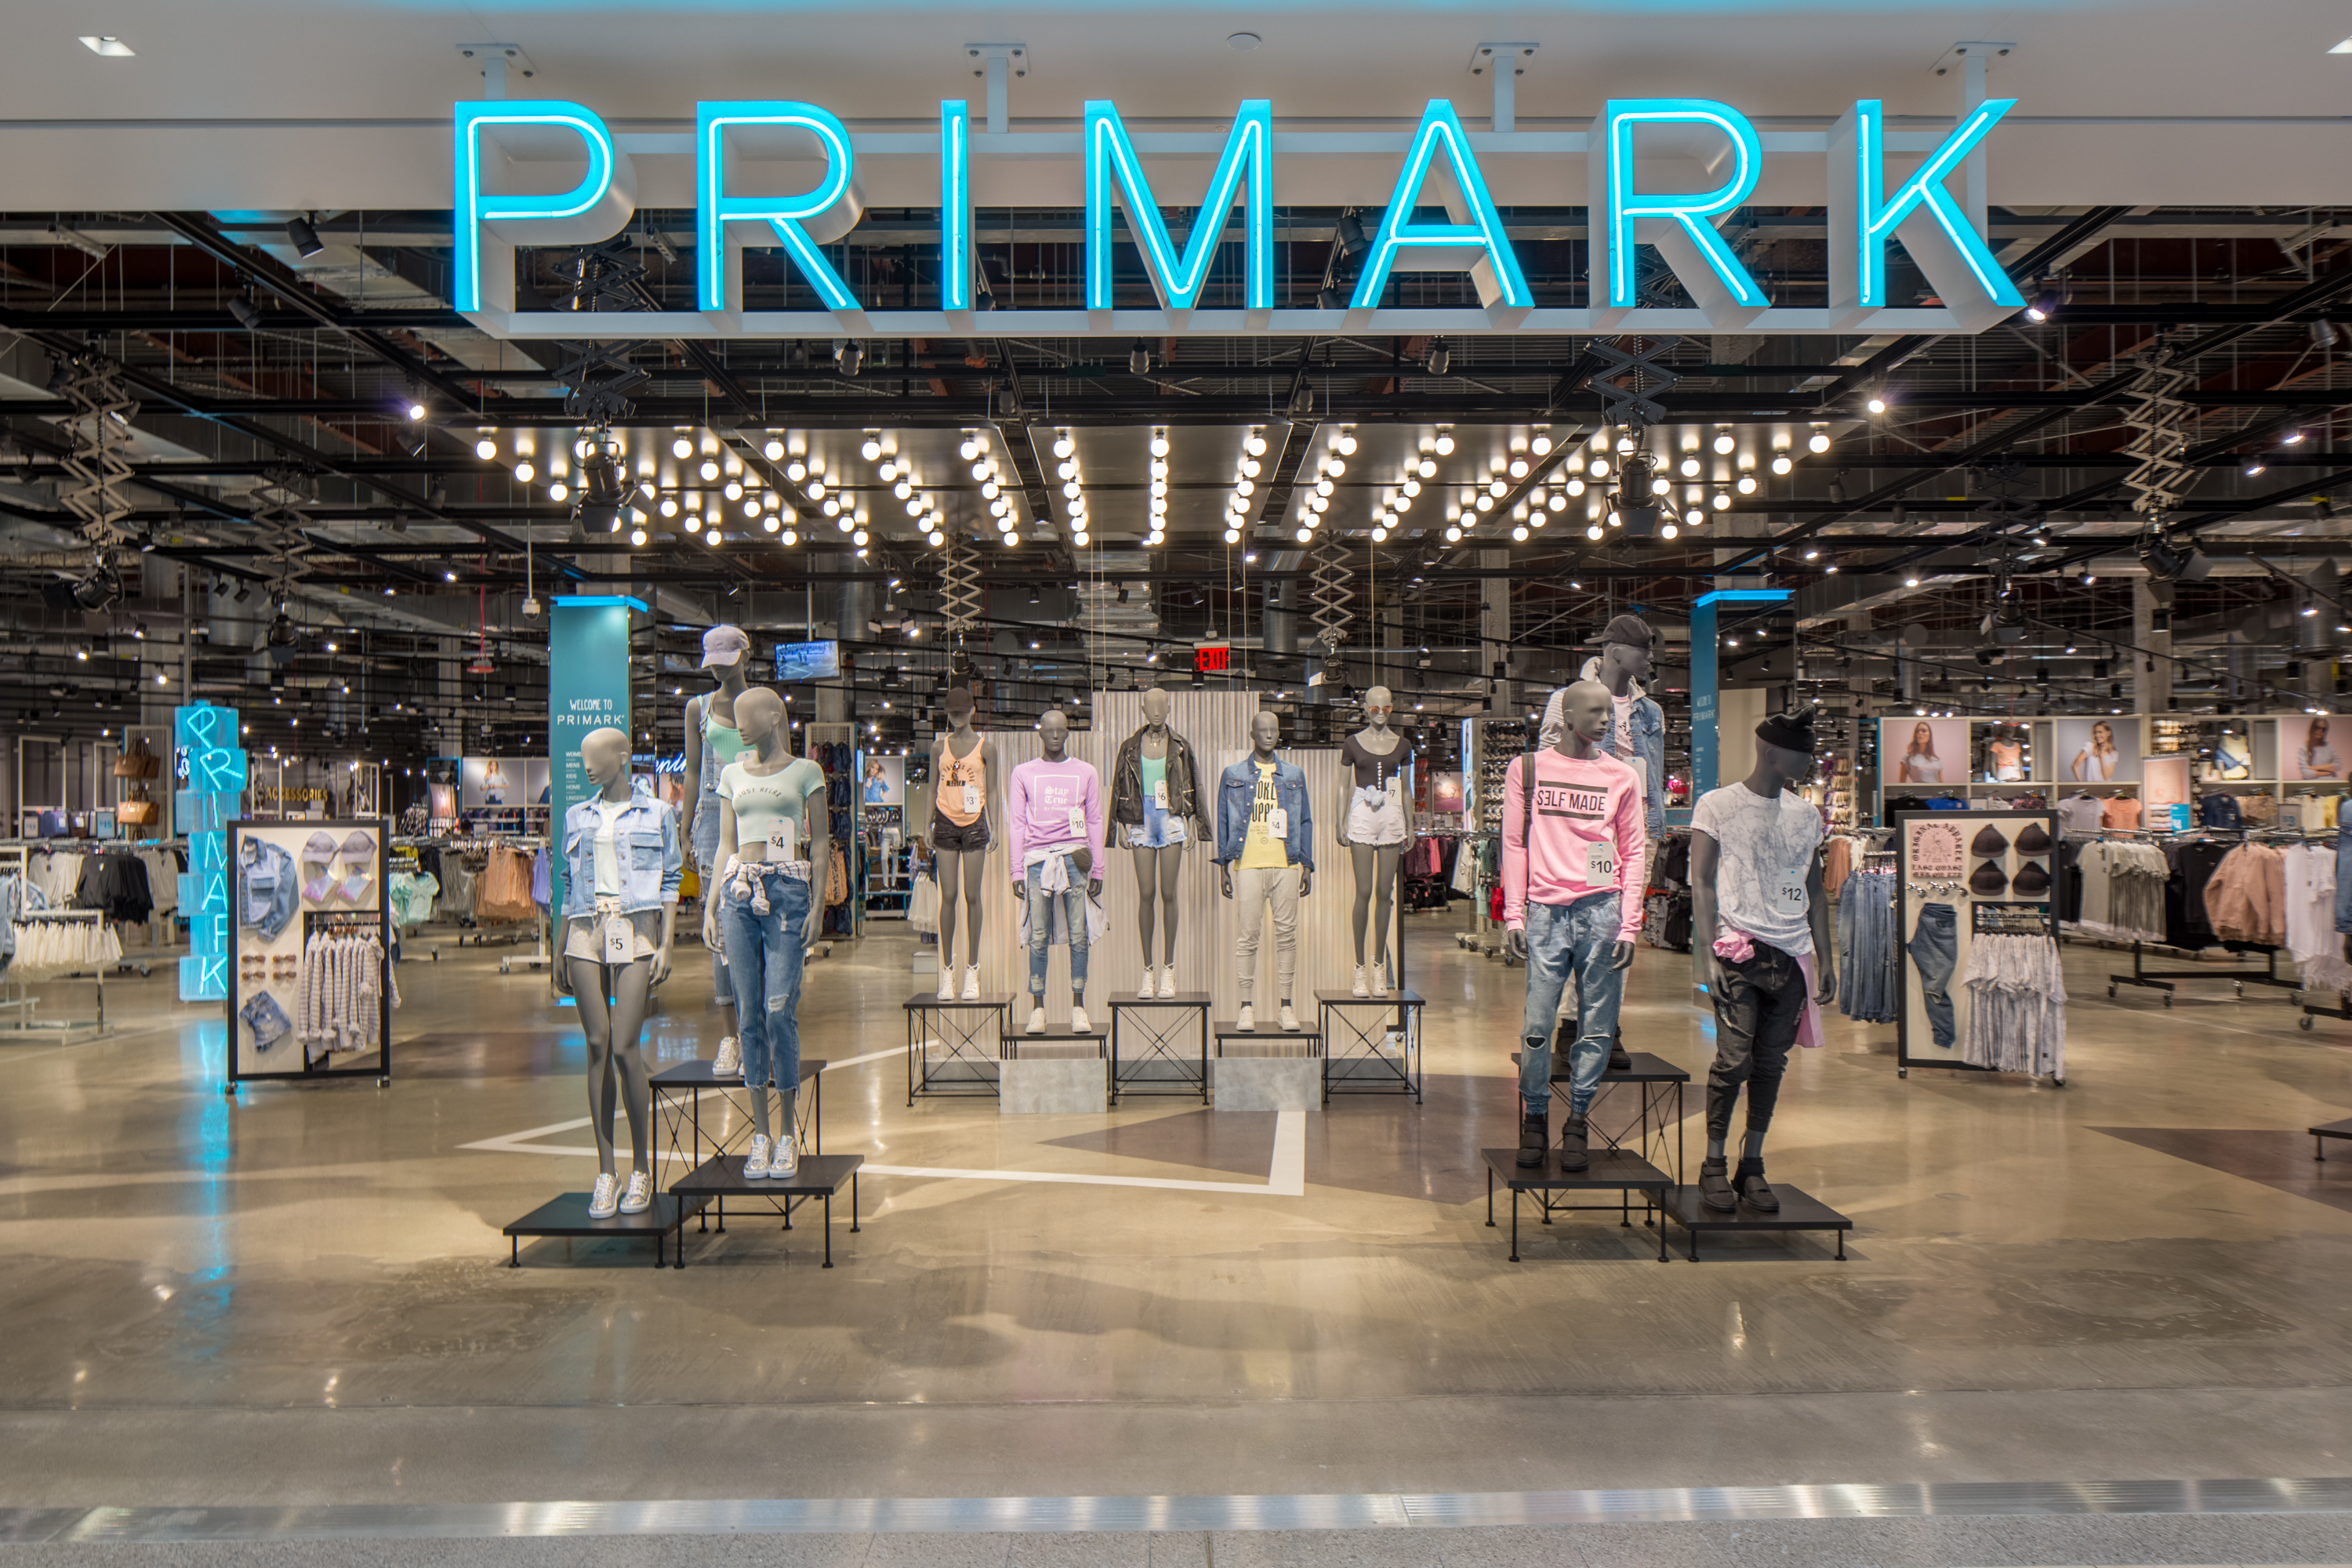 Take a look at New York's first Primark!